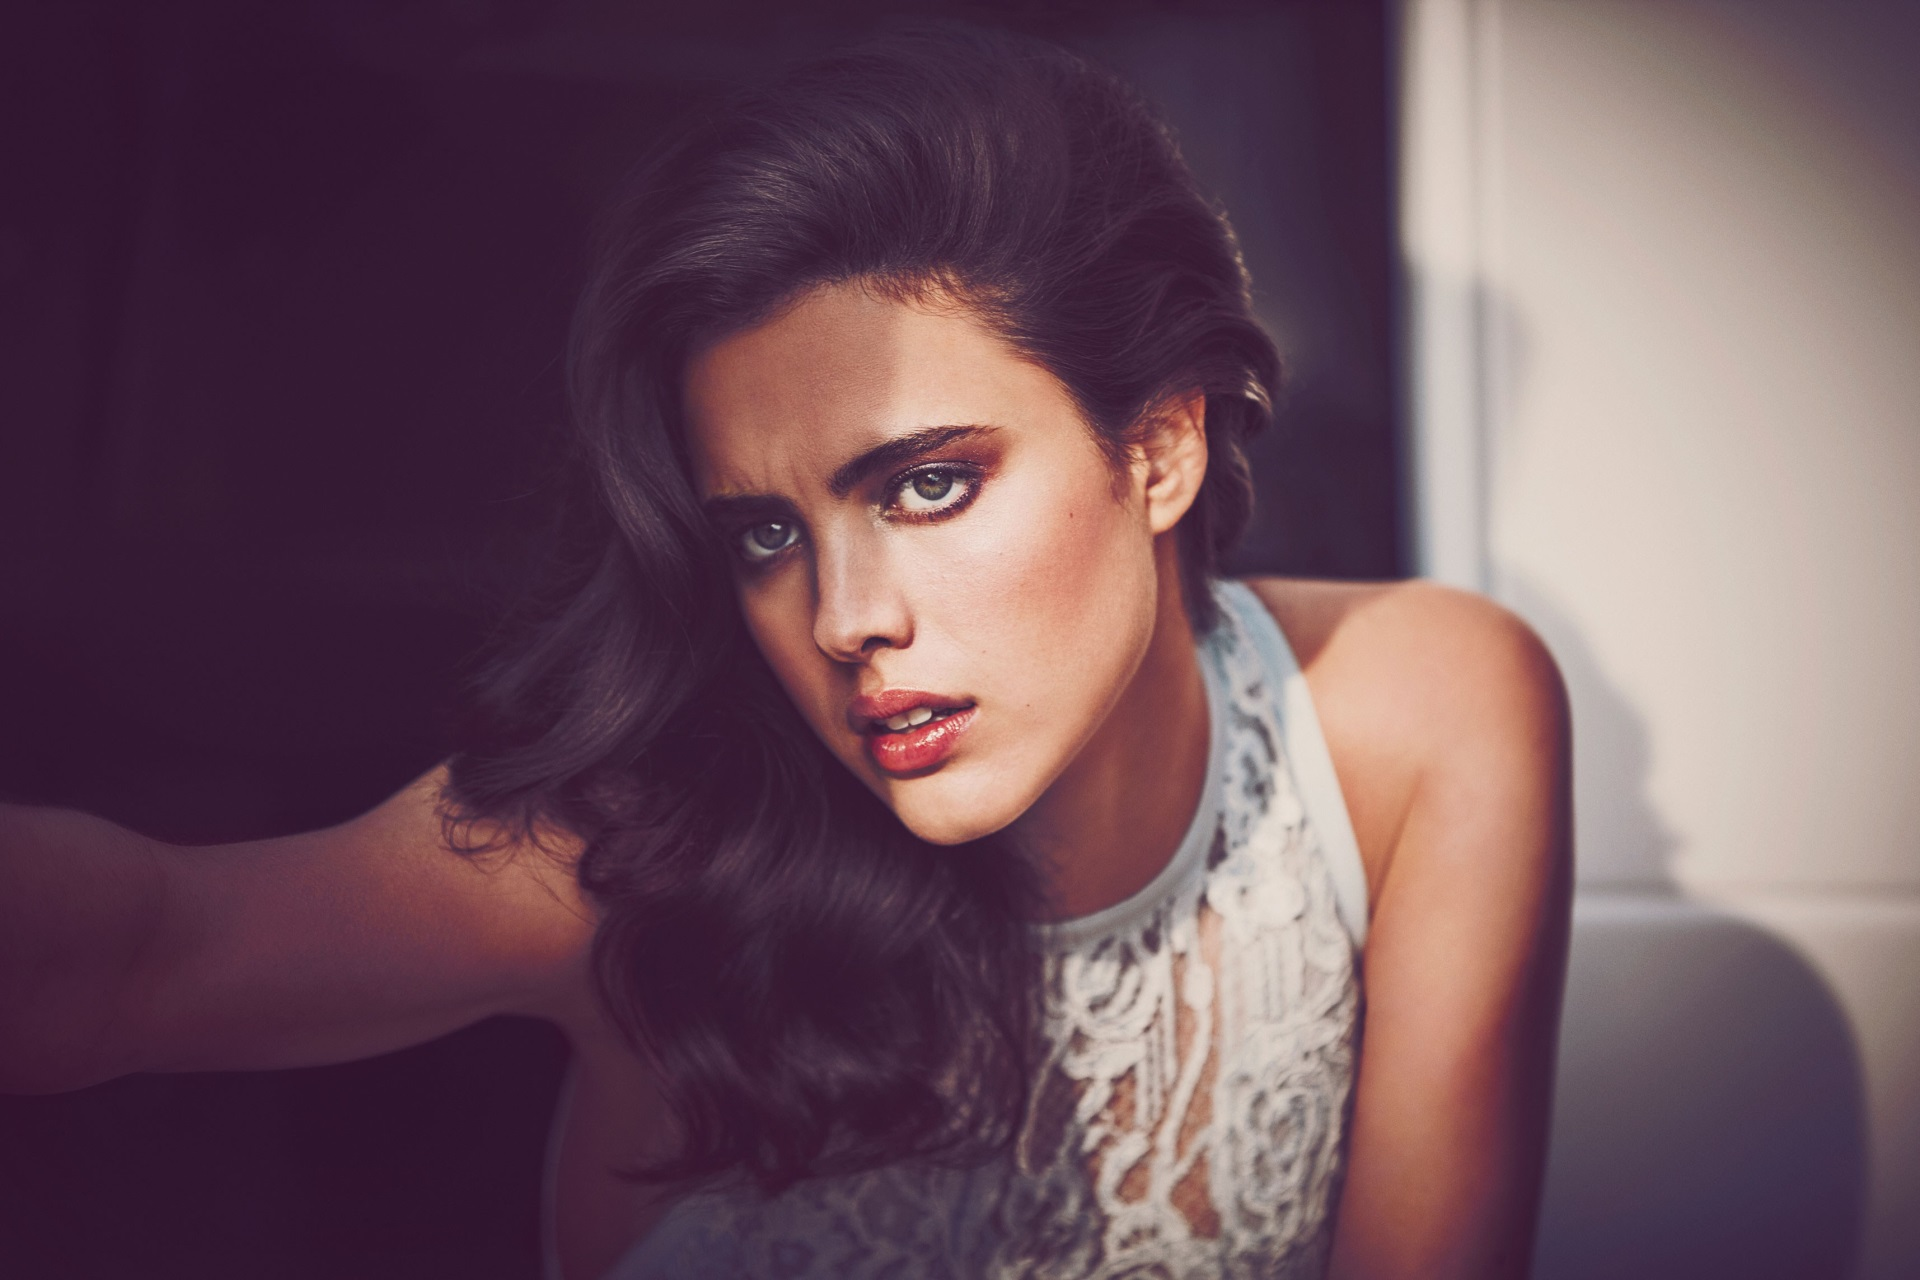 1920x1280 - Margaret Qualley Wallpapers 24